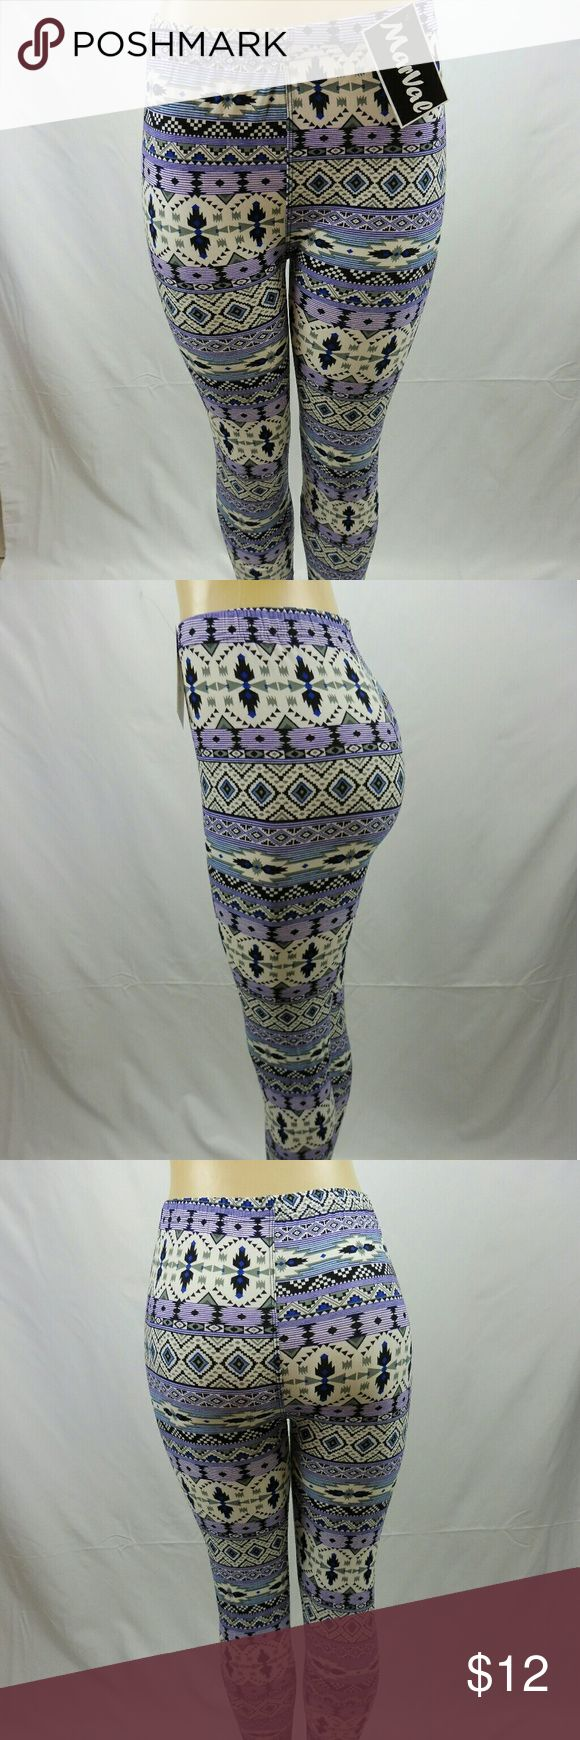 Boho, Tribal Leggings,  NWT Boho, Tribal Leggings, NWT, Soft and Comfortable,  stretchy.  One for 12 or bundle 3 for 28 Pants Leggings